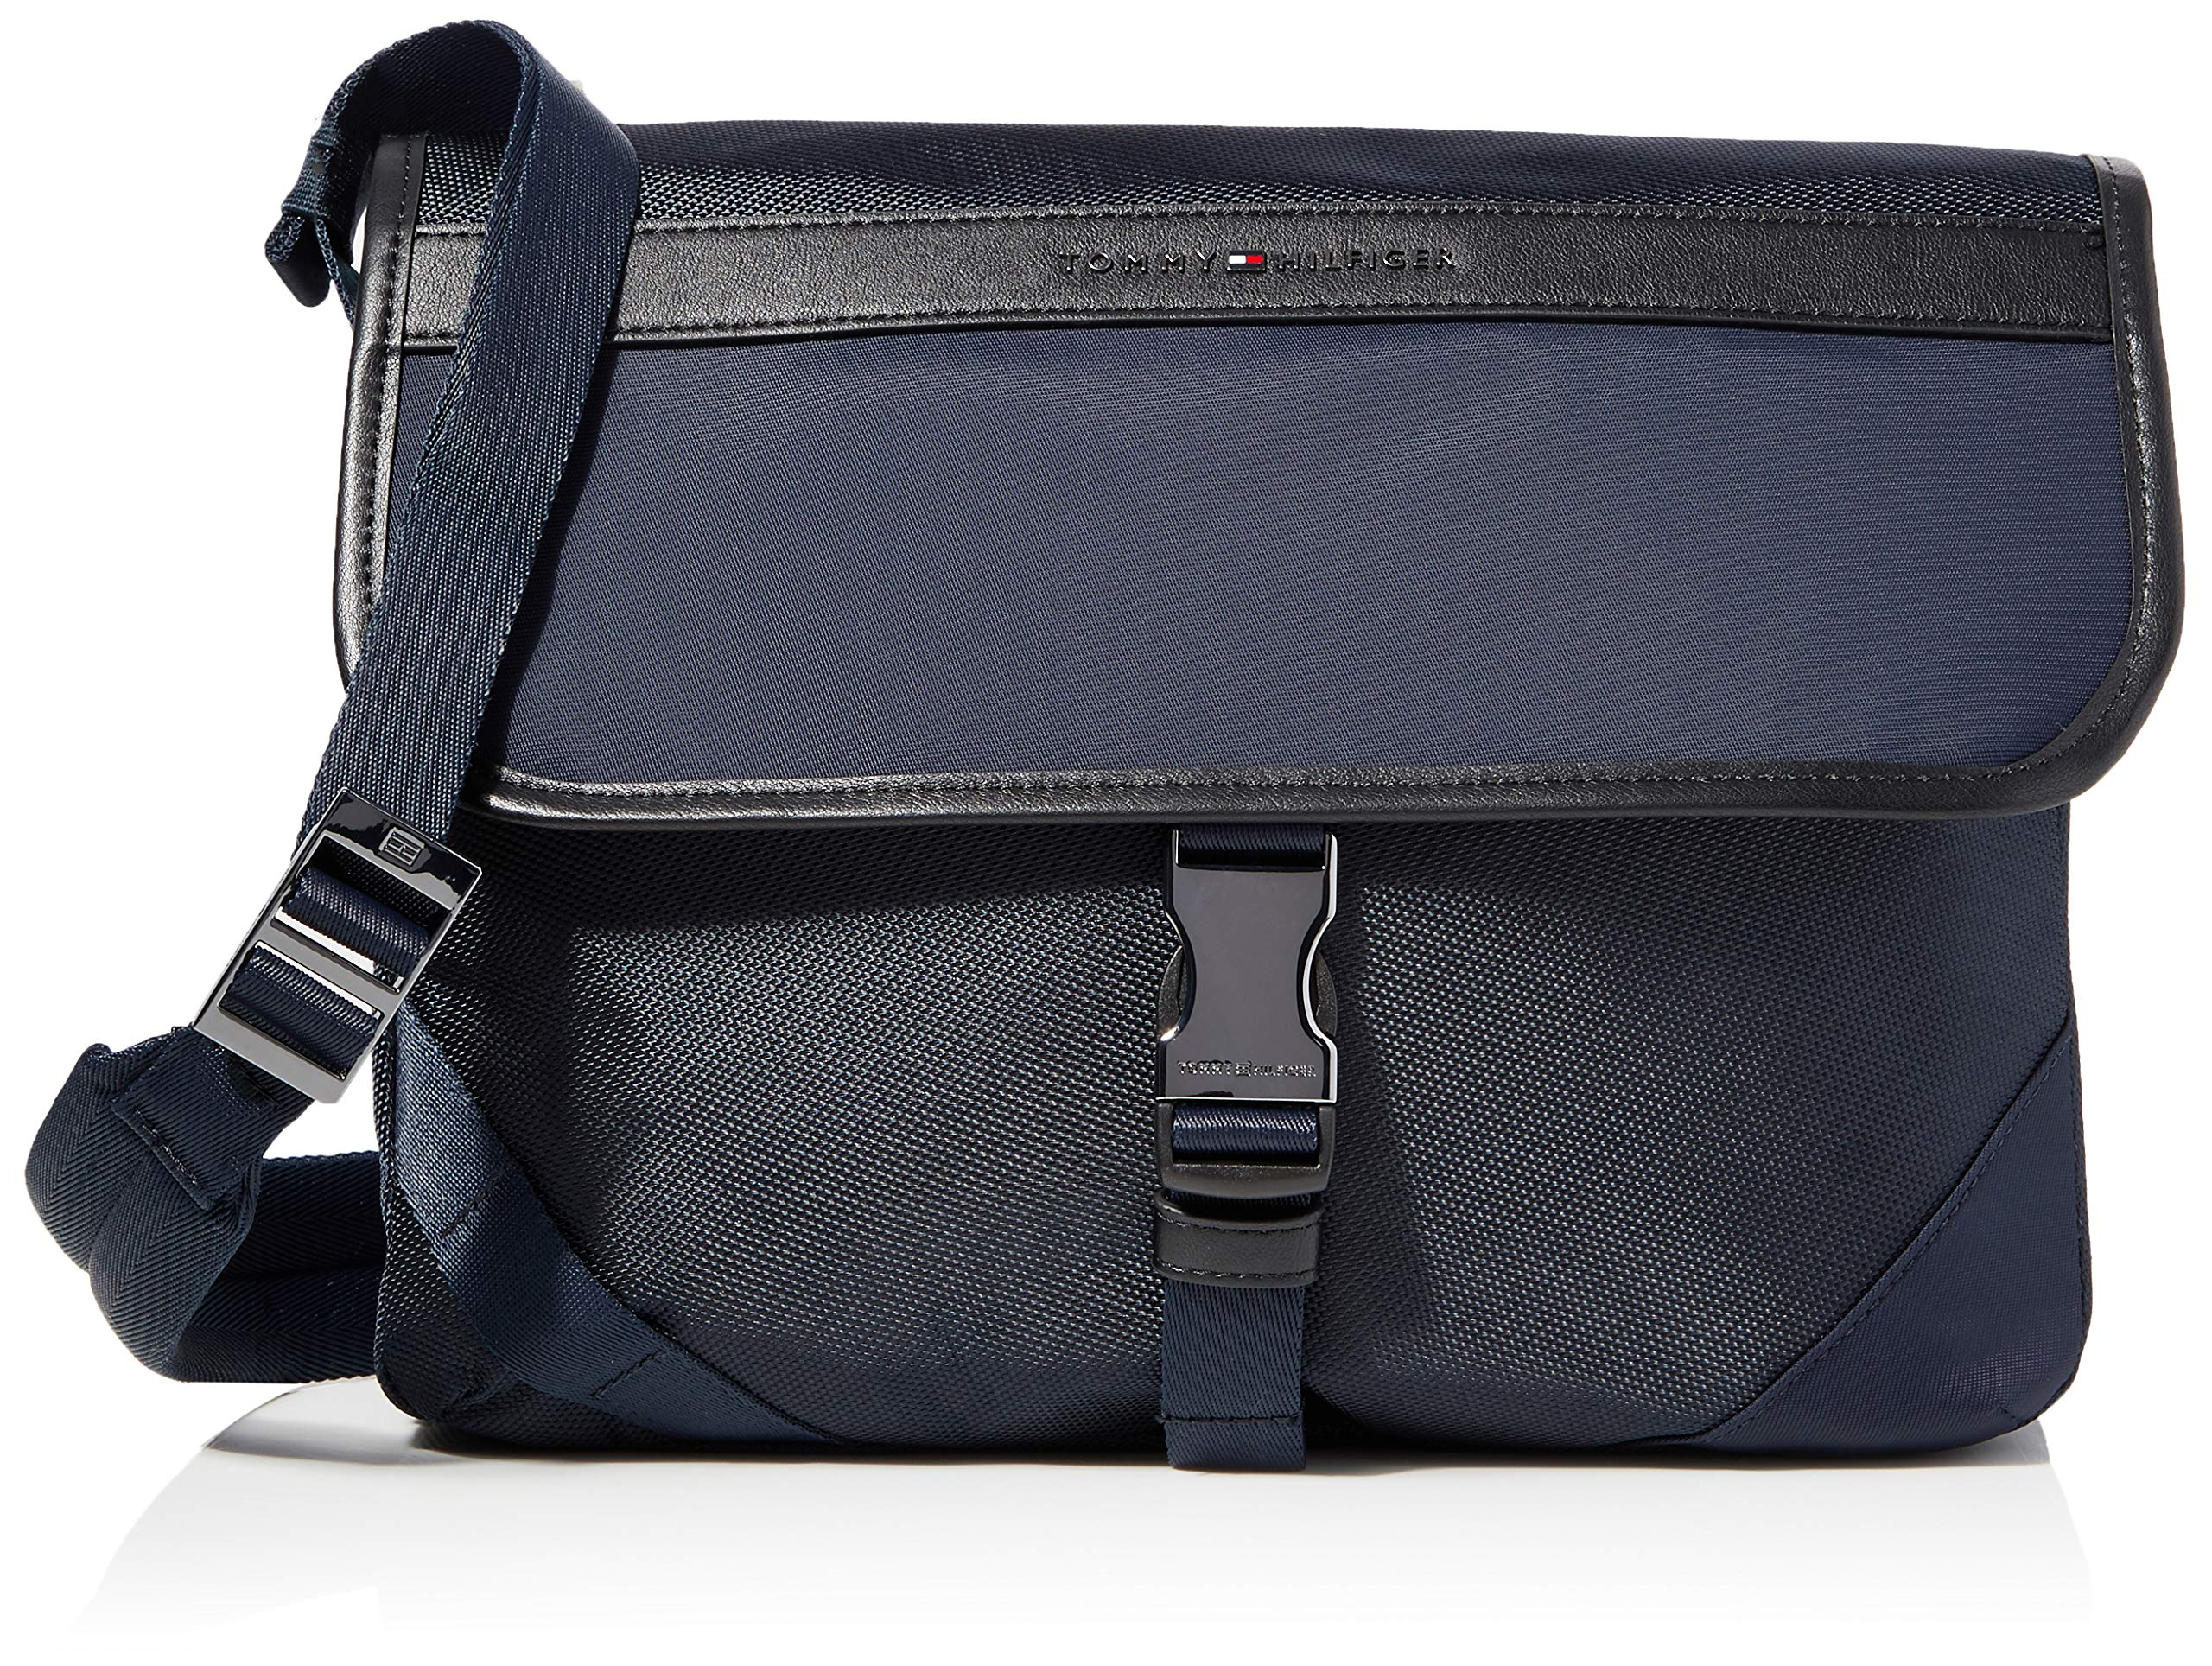 Tommy hilfiger ELEVATED NYLON MESSENGER, BLUE